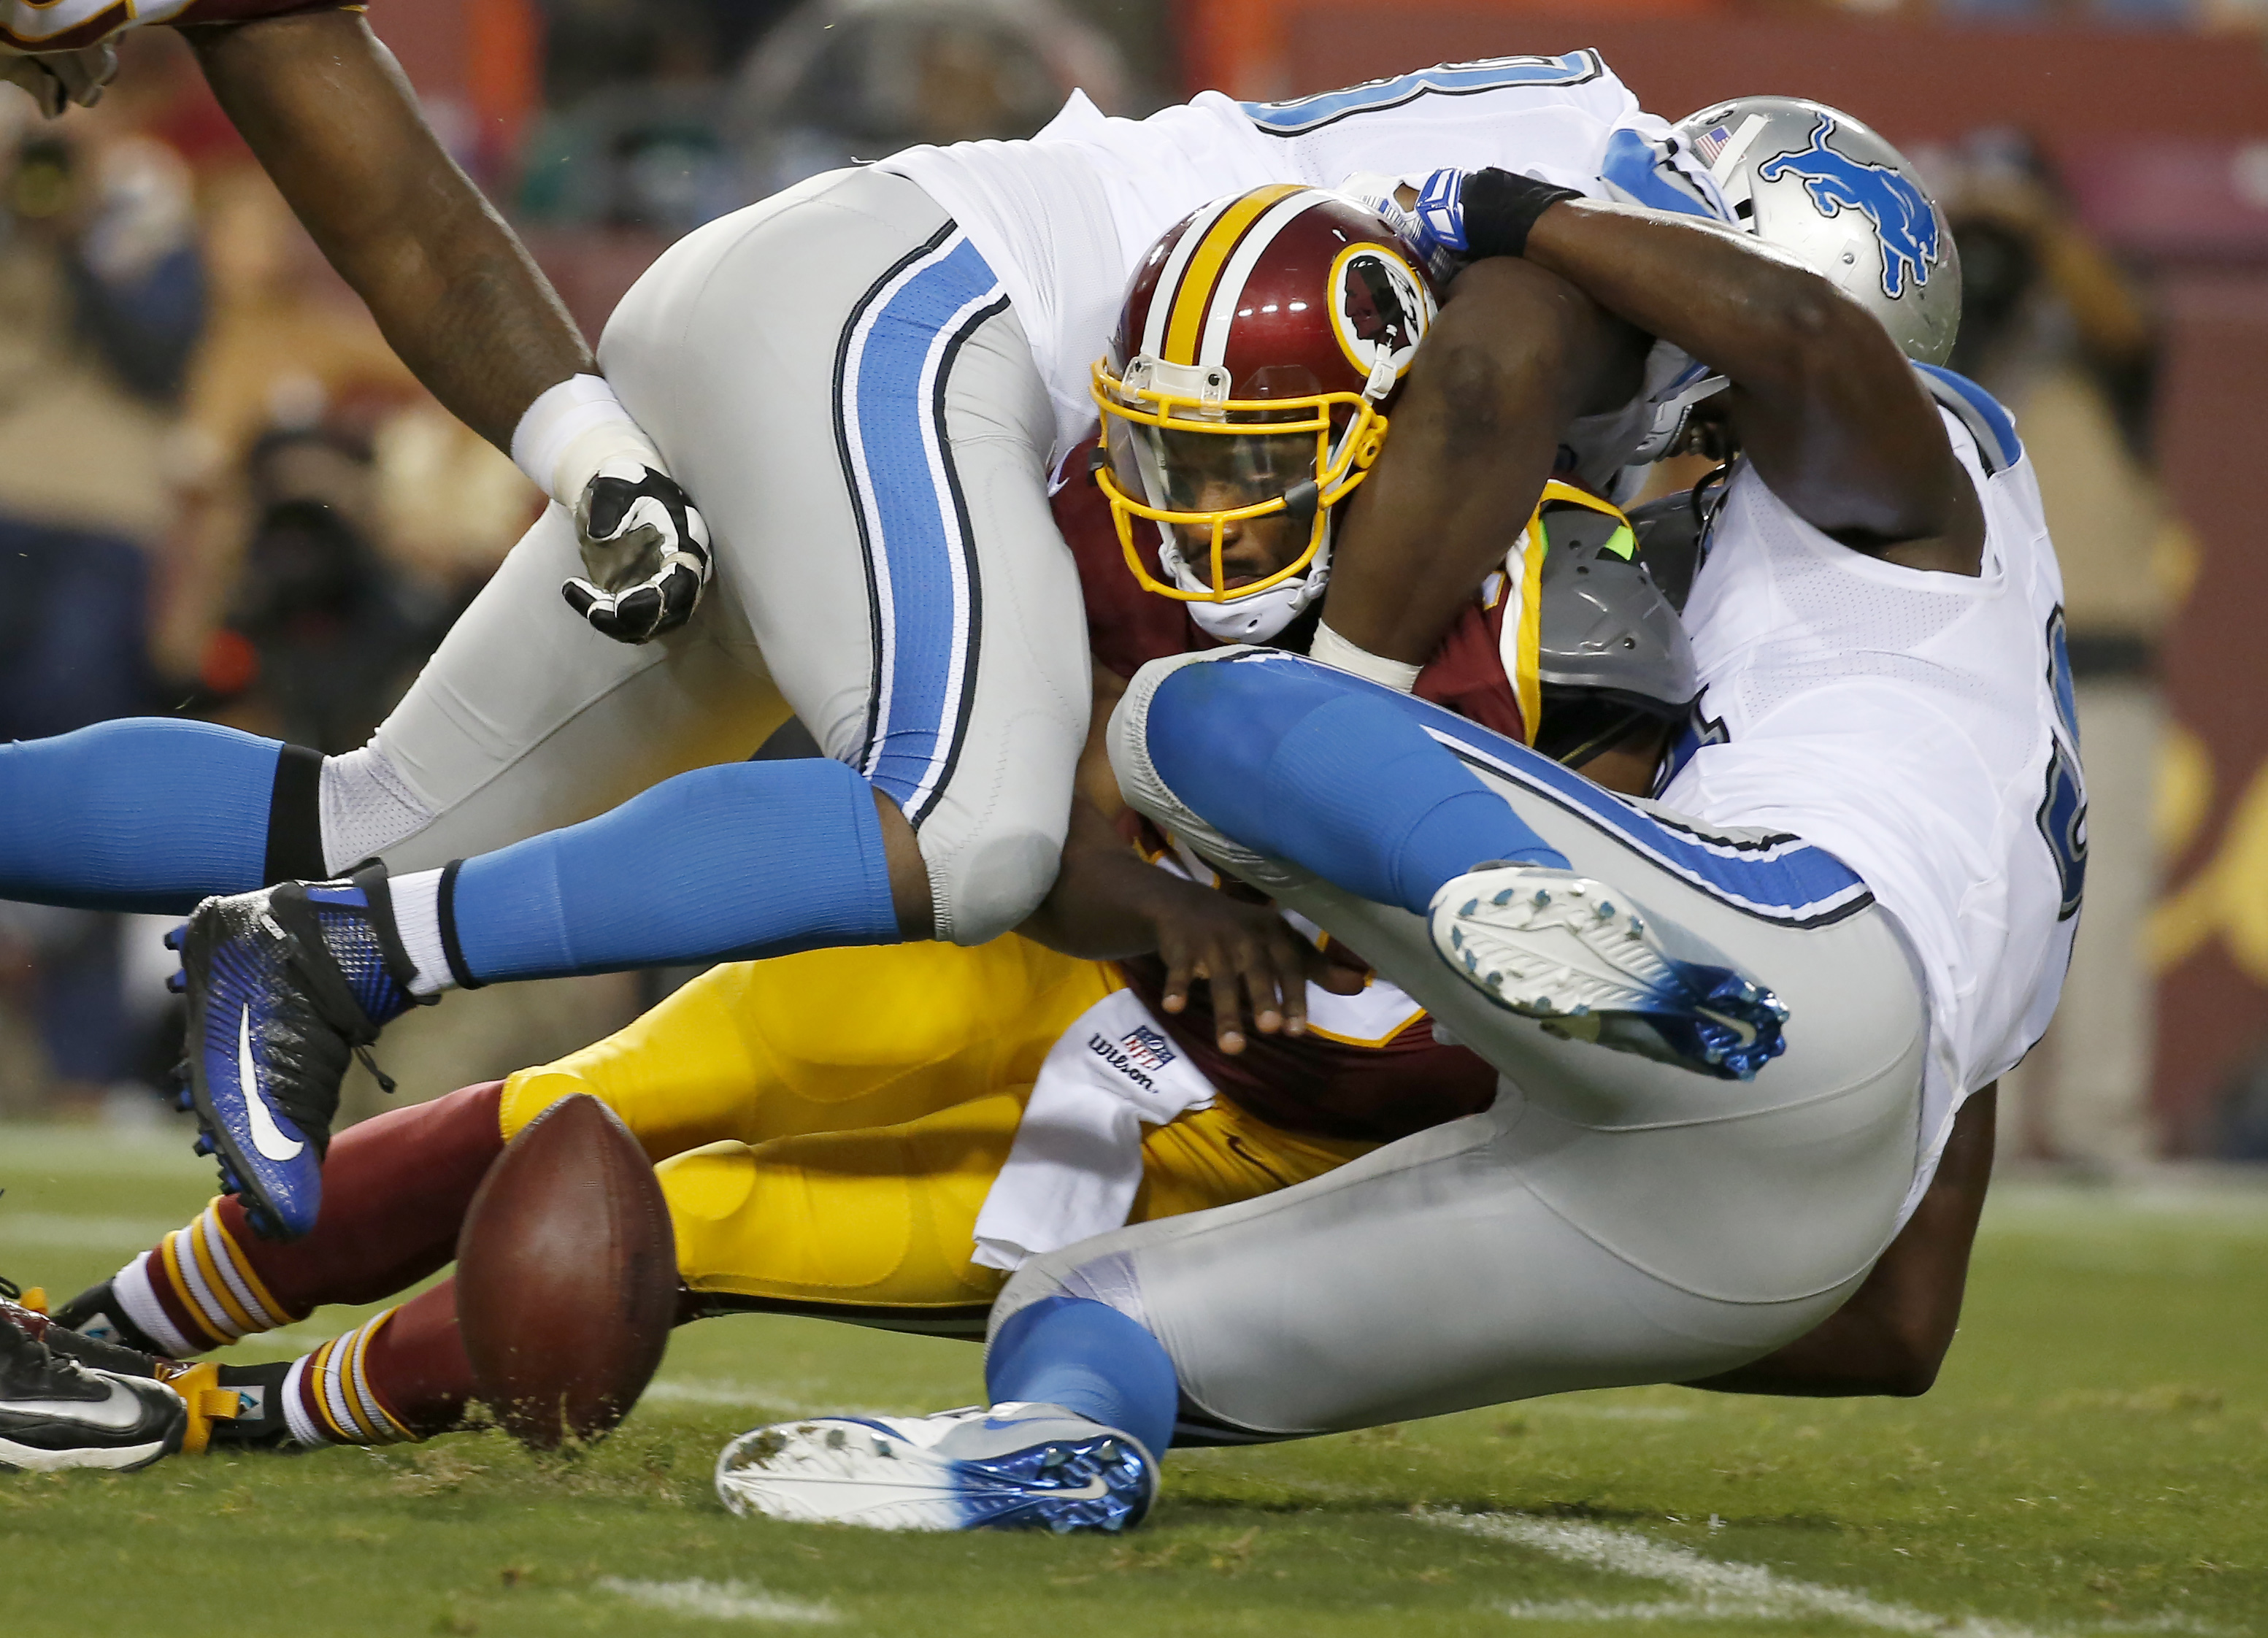 With RG3 injured, now what?